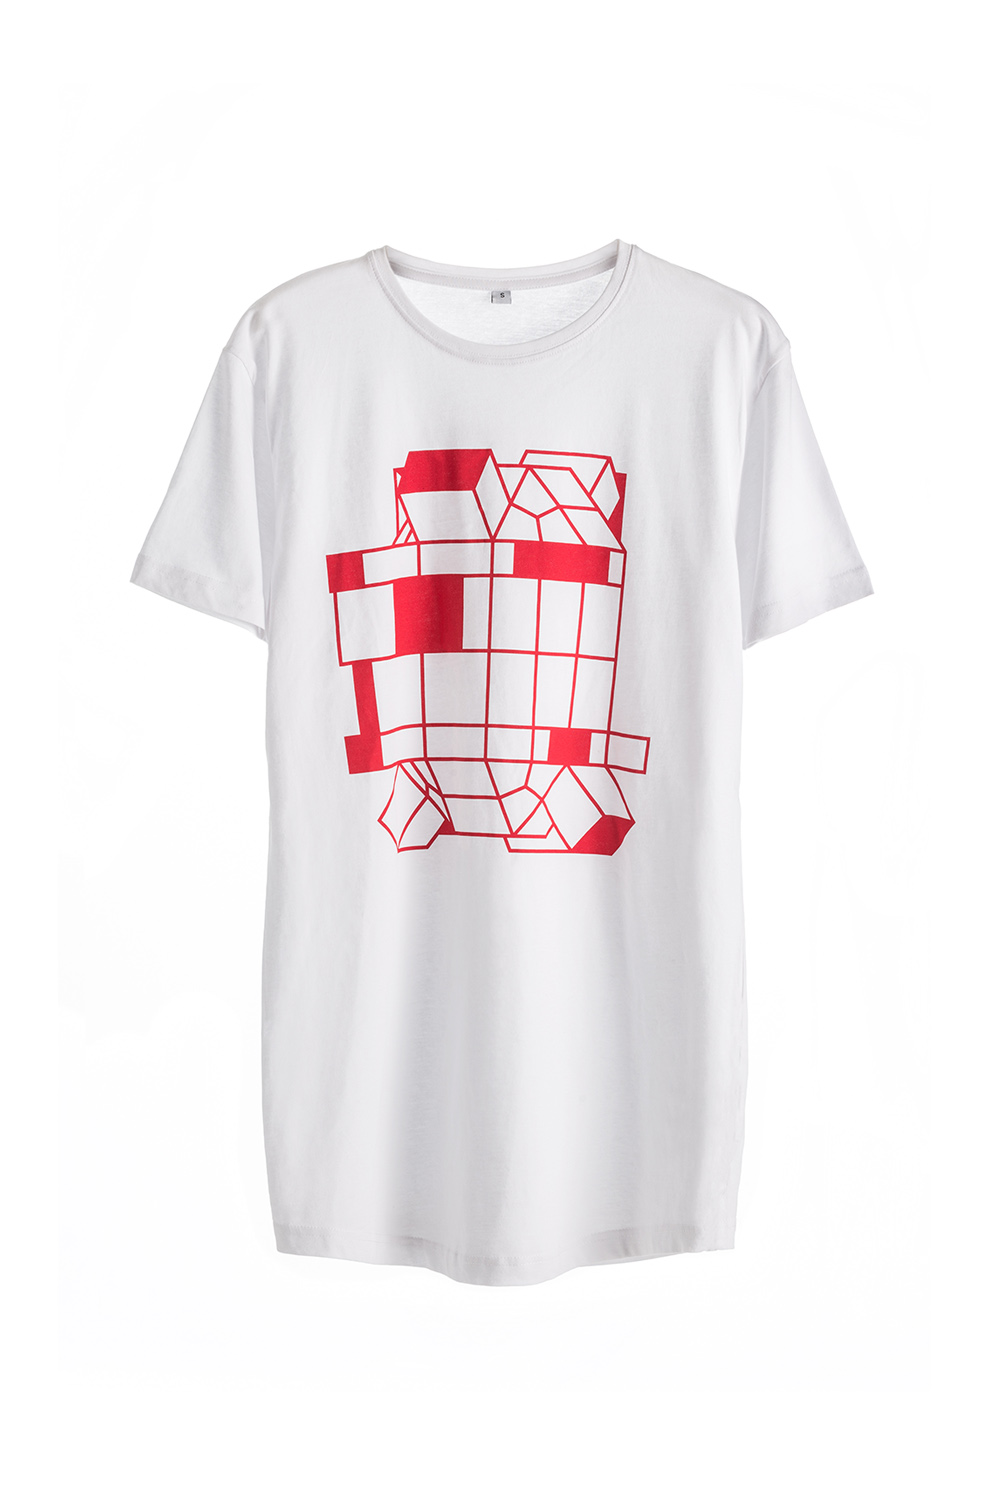 Cotton Man T-shirt with Robot White Red print Short Sleeve